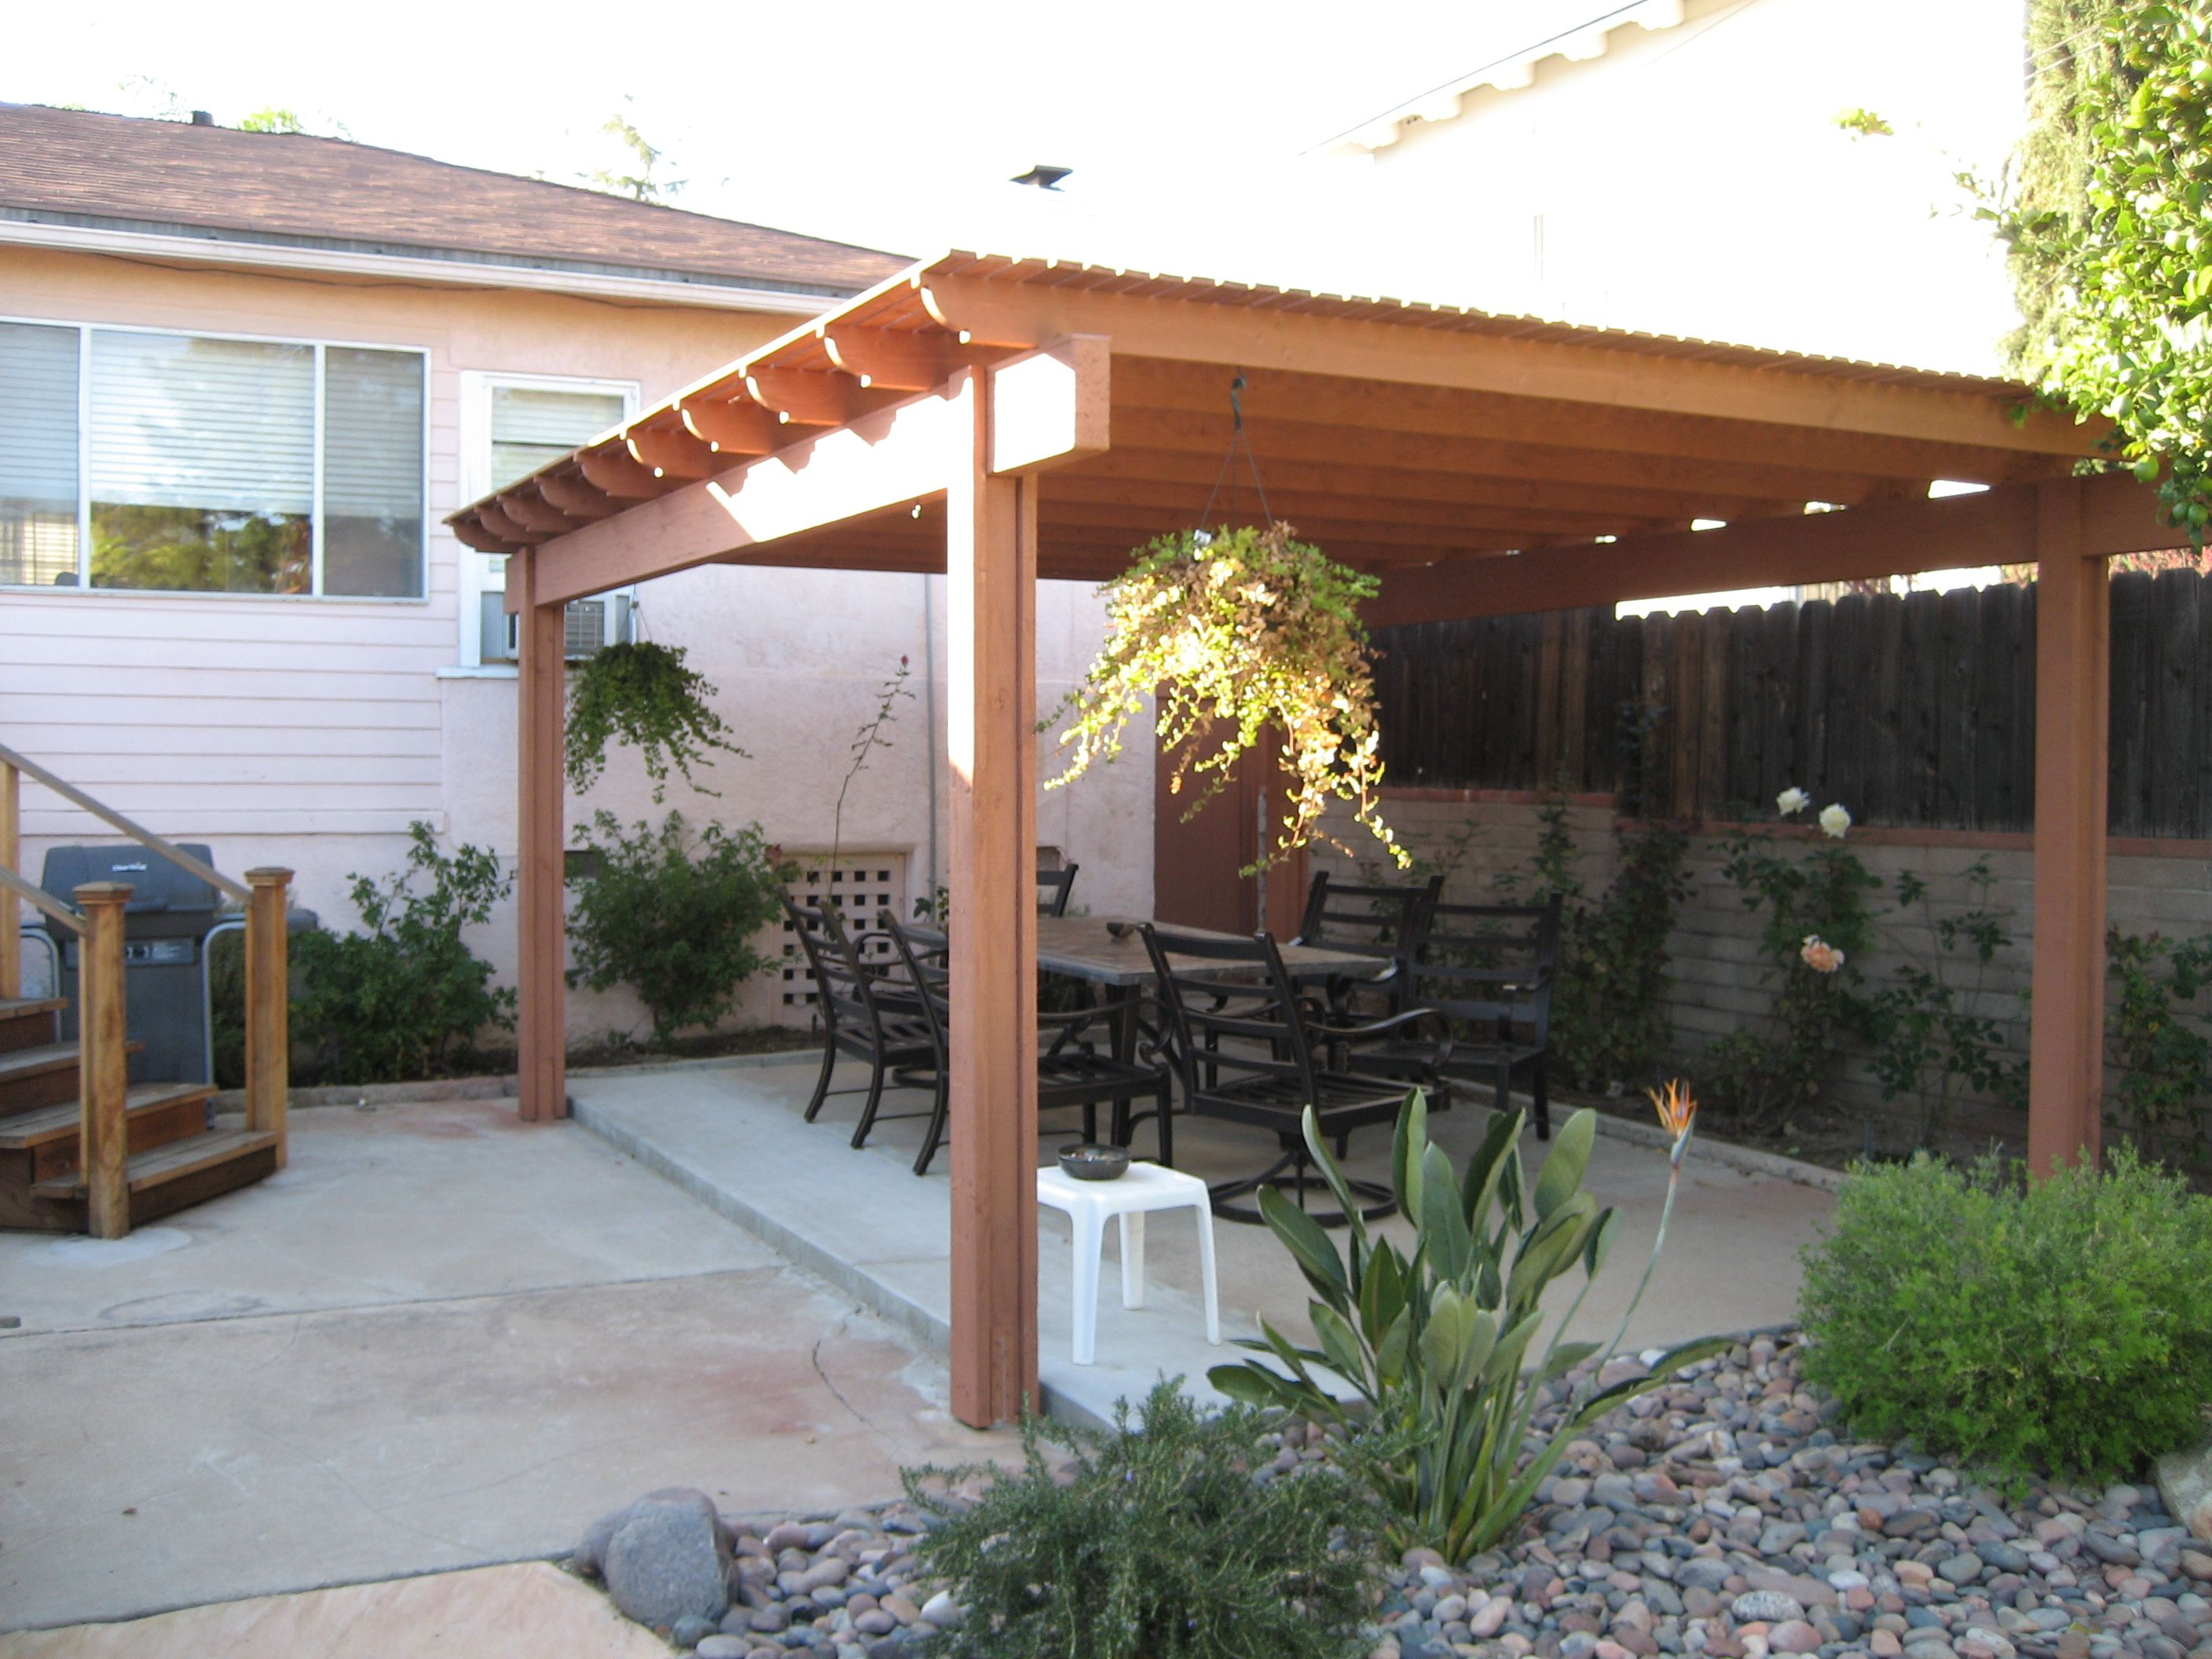 Covered patio designs pictures covered patio design 1049 pictures photos images patio - Small covered patio ideas ...